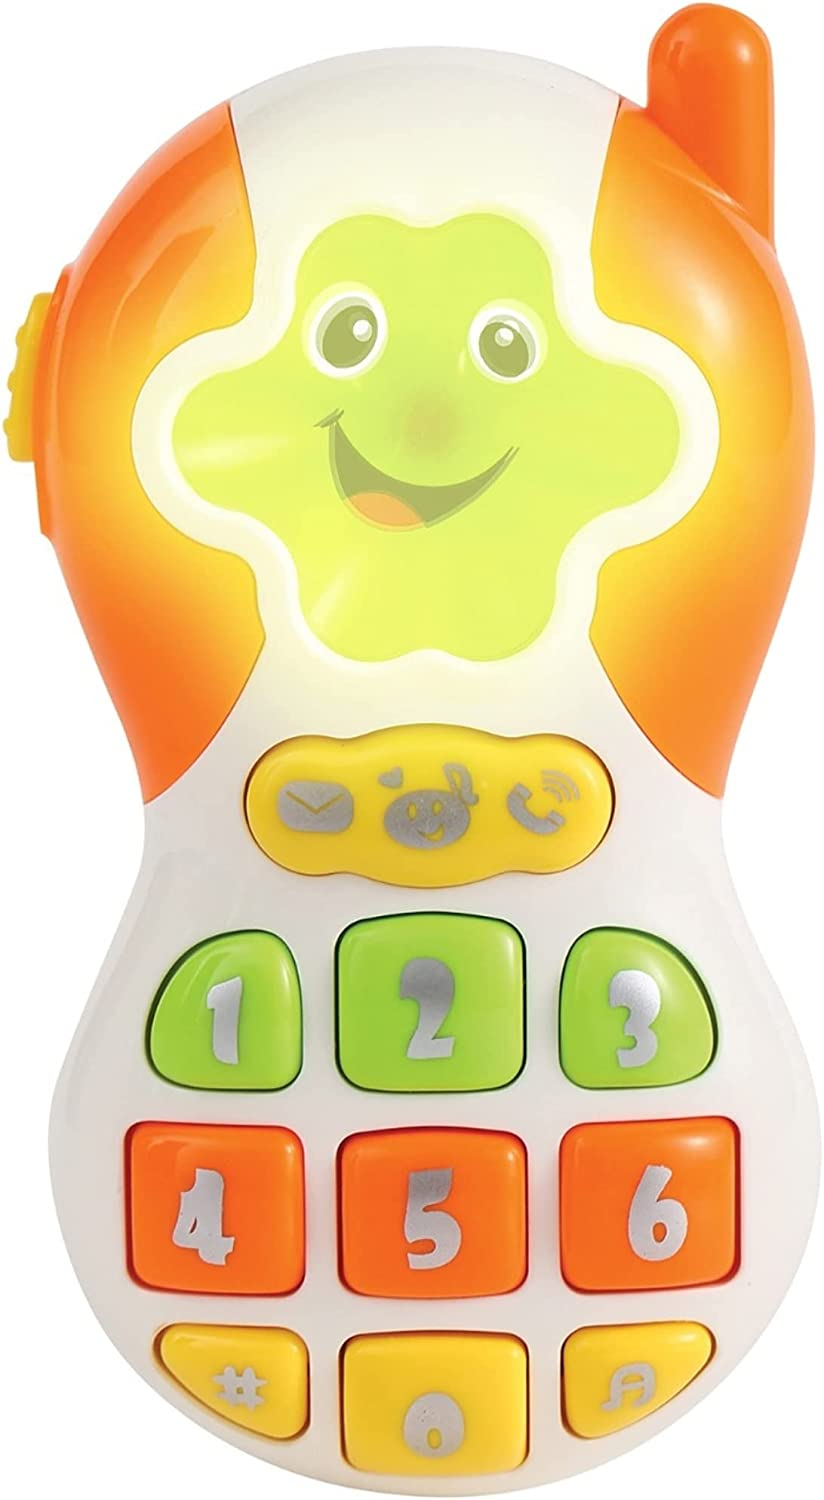 Baby Cell Phone Toy with Popular Melodies for Toddlers, Ringing Sounds, Lights and Numbers for Role Play and Early Learning Education